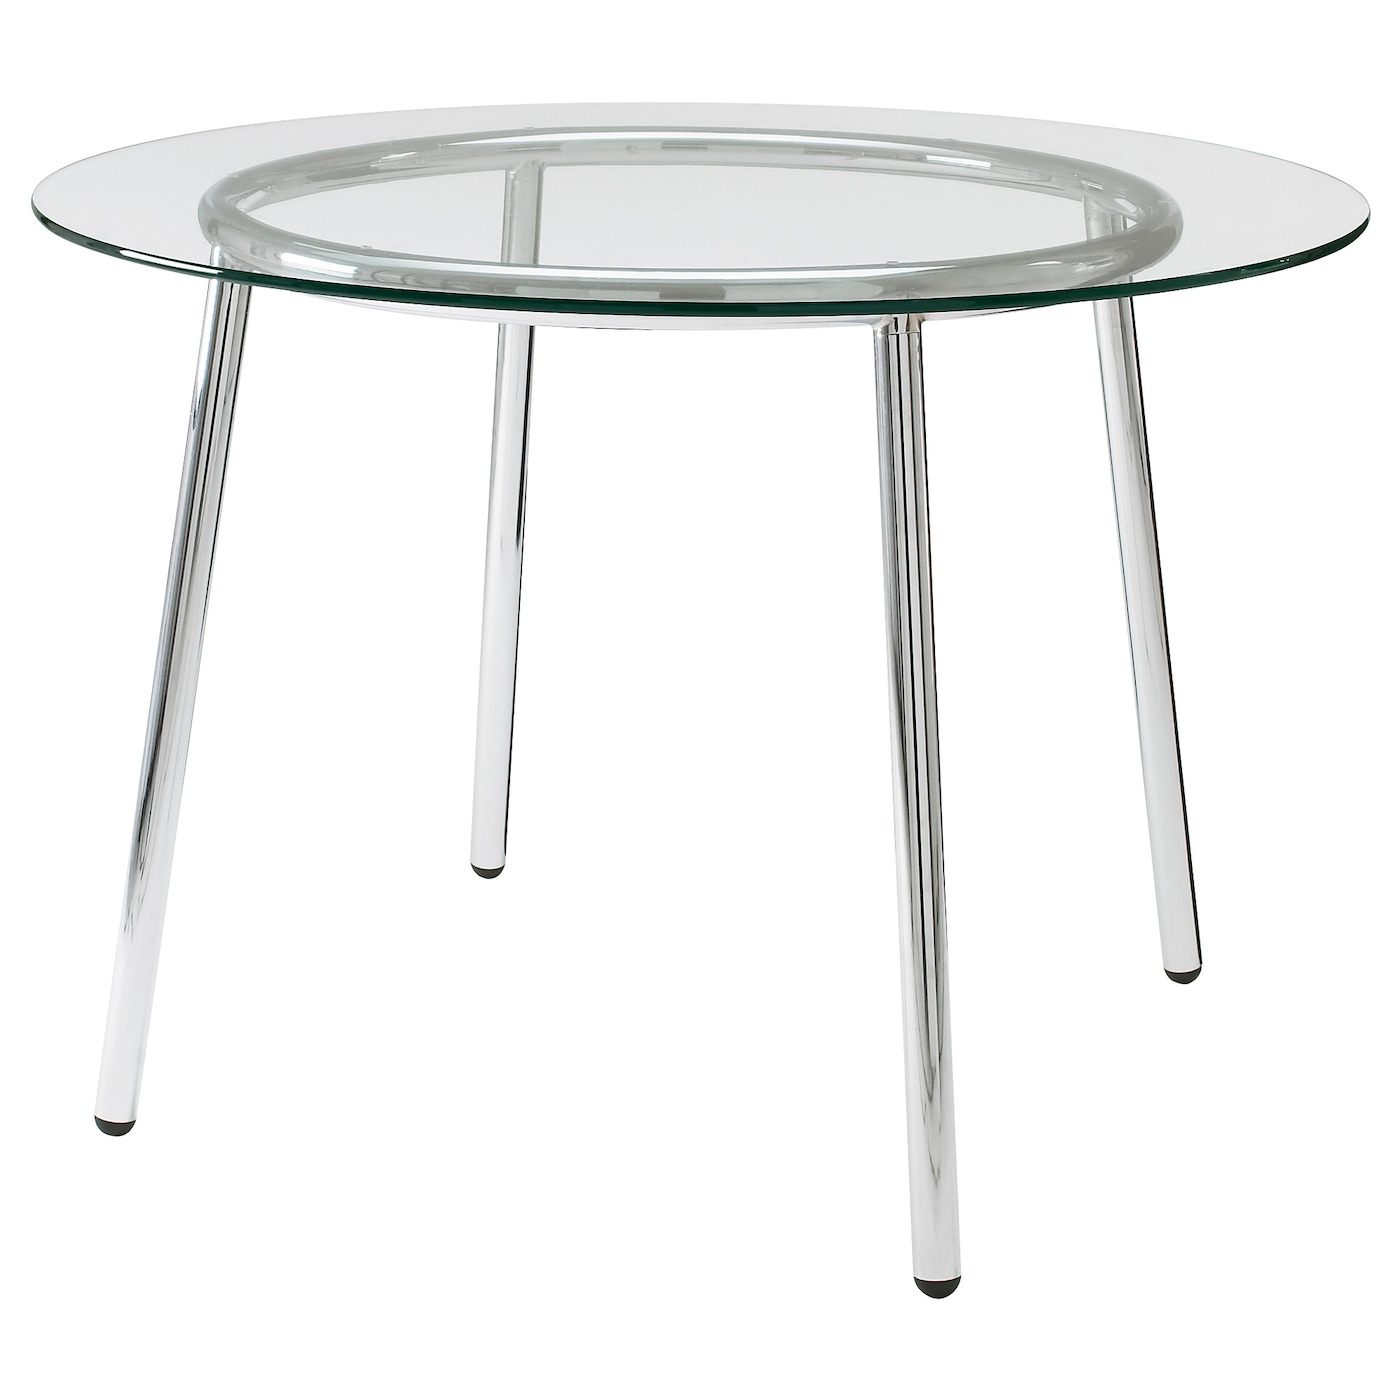 Ikea tables dining tables - Glass dining table ikea ...